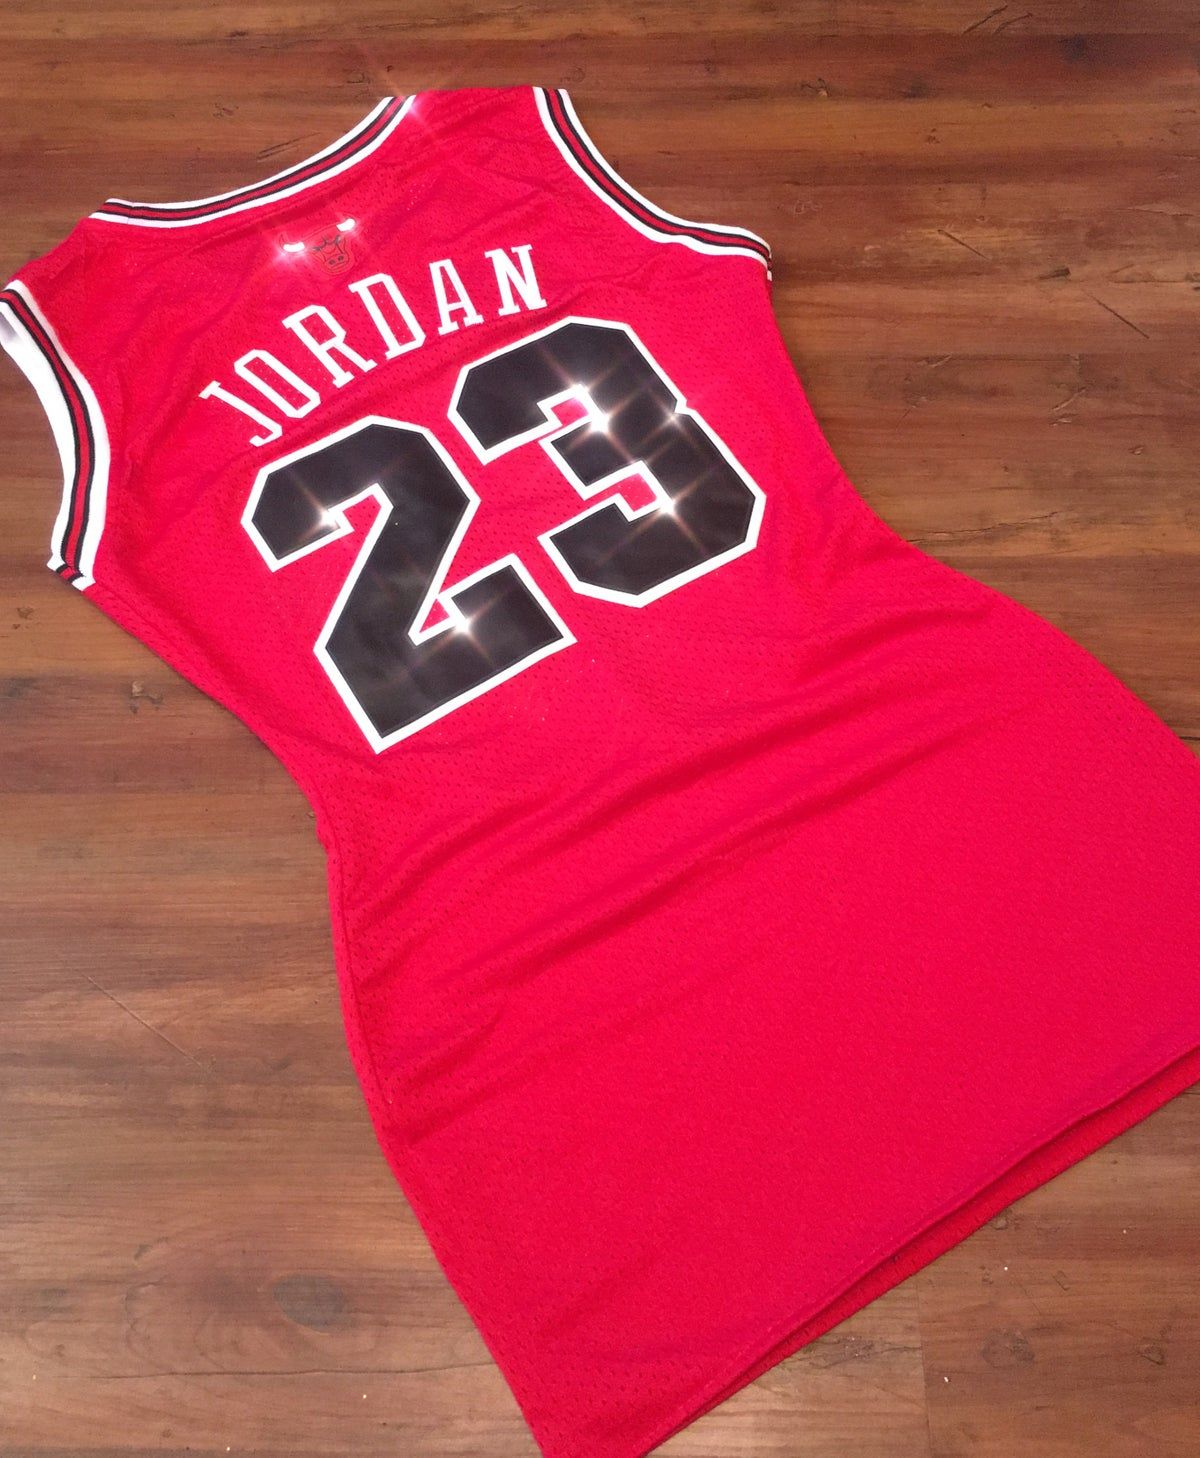 Jordan Bulls Nba Jersey Dress Plain And With Lace Up Option Please Read Jersey Dress Outfit Cute Nike Outfits Sporty Outfits